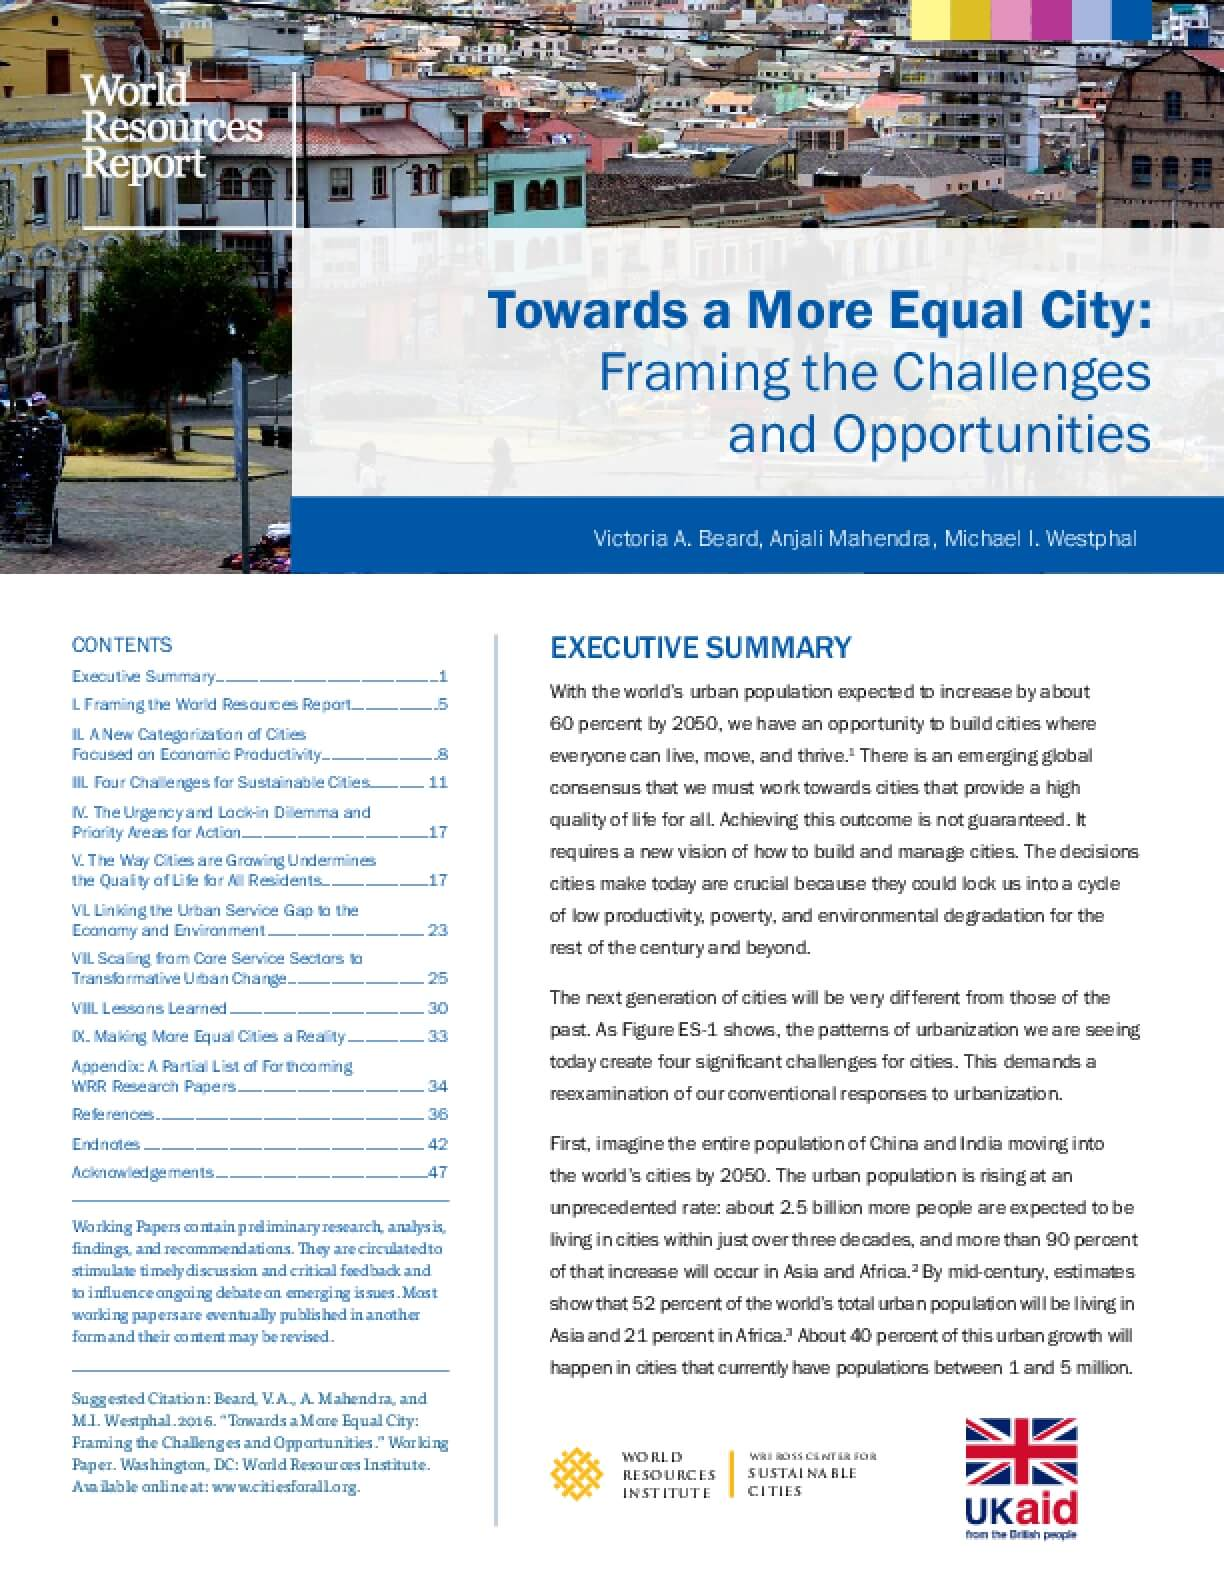 Towards a More Equal City: Framing the Challenges and Opportunities